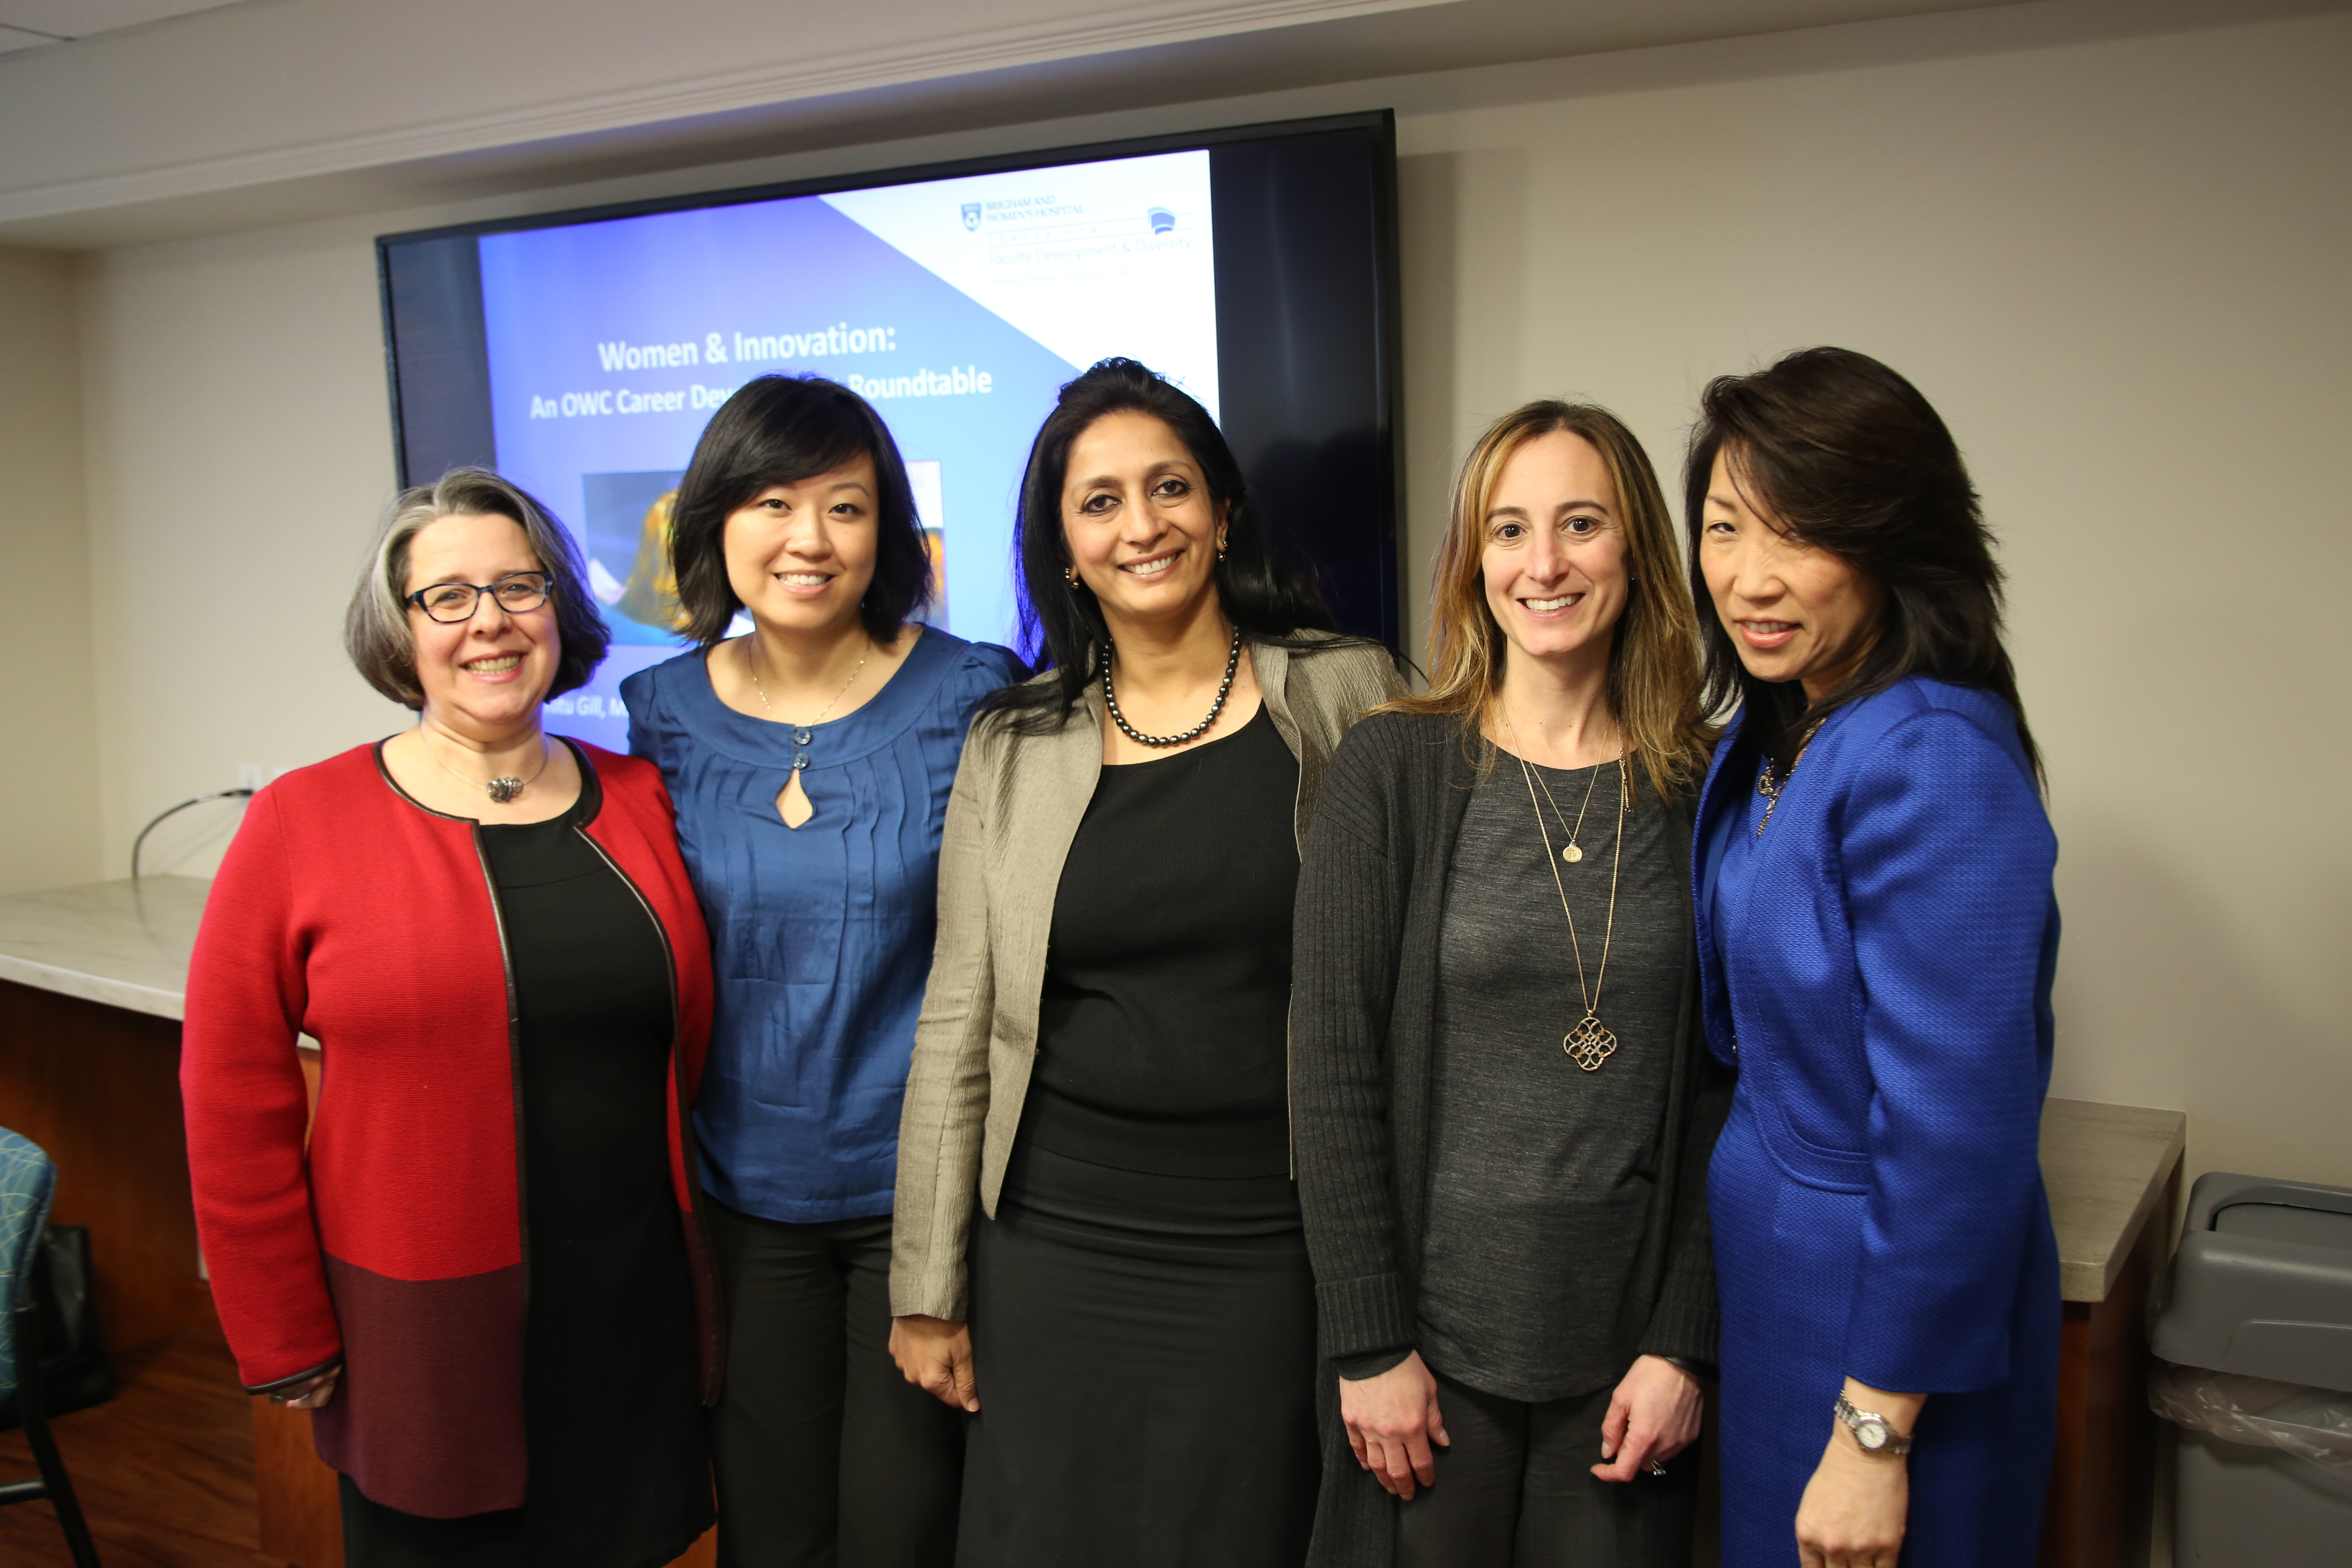 From left: Kathryn Rexrode, YiDing Yu, Ritu Gill, Lesley Solomon and Esther Rhei